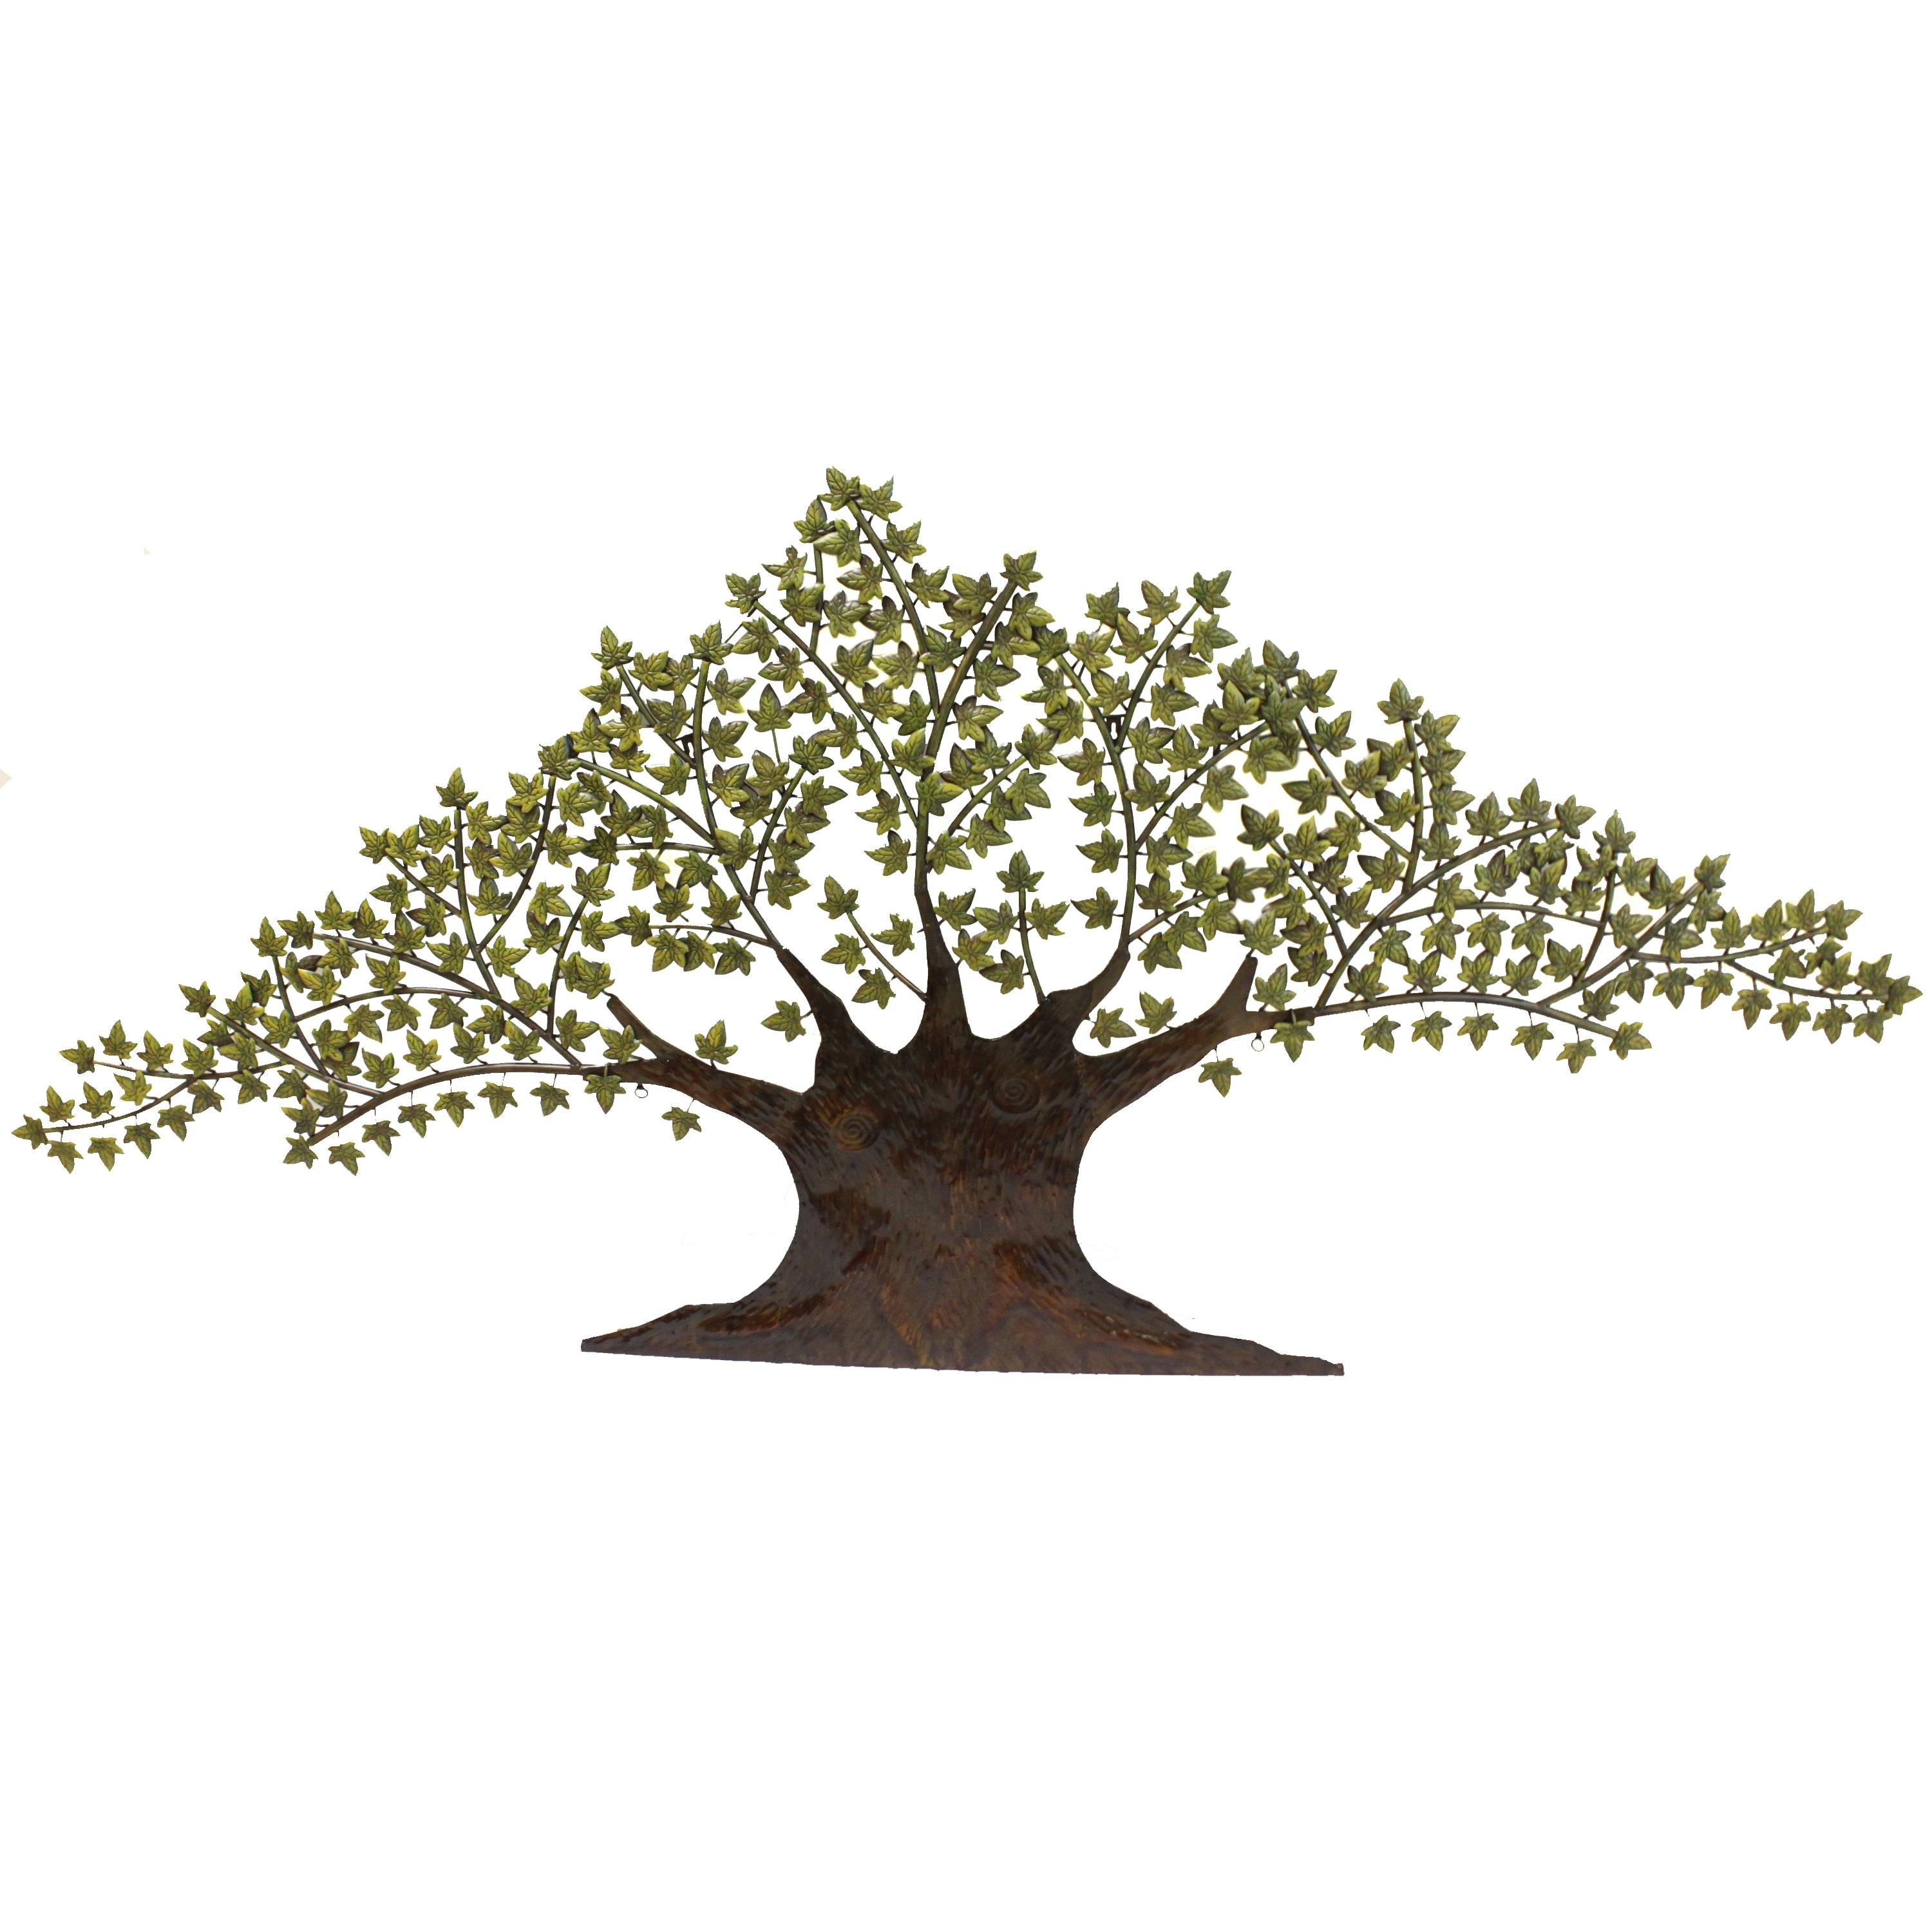 Grotesque Tree Of Life Metal Wall Art Decor Sculpture With Green Within Latest Large Tree Of Life Metal Wall Art (View 5 of 20)